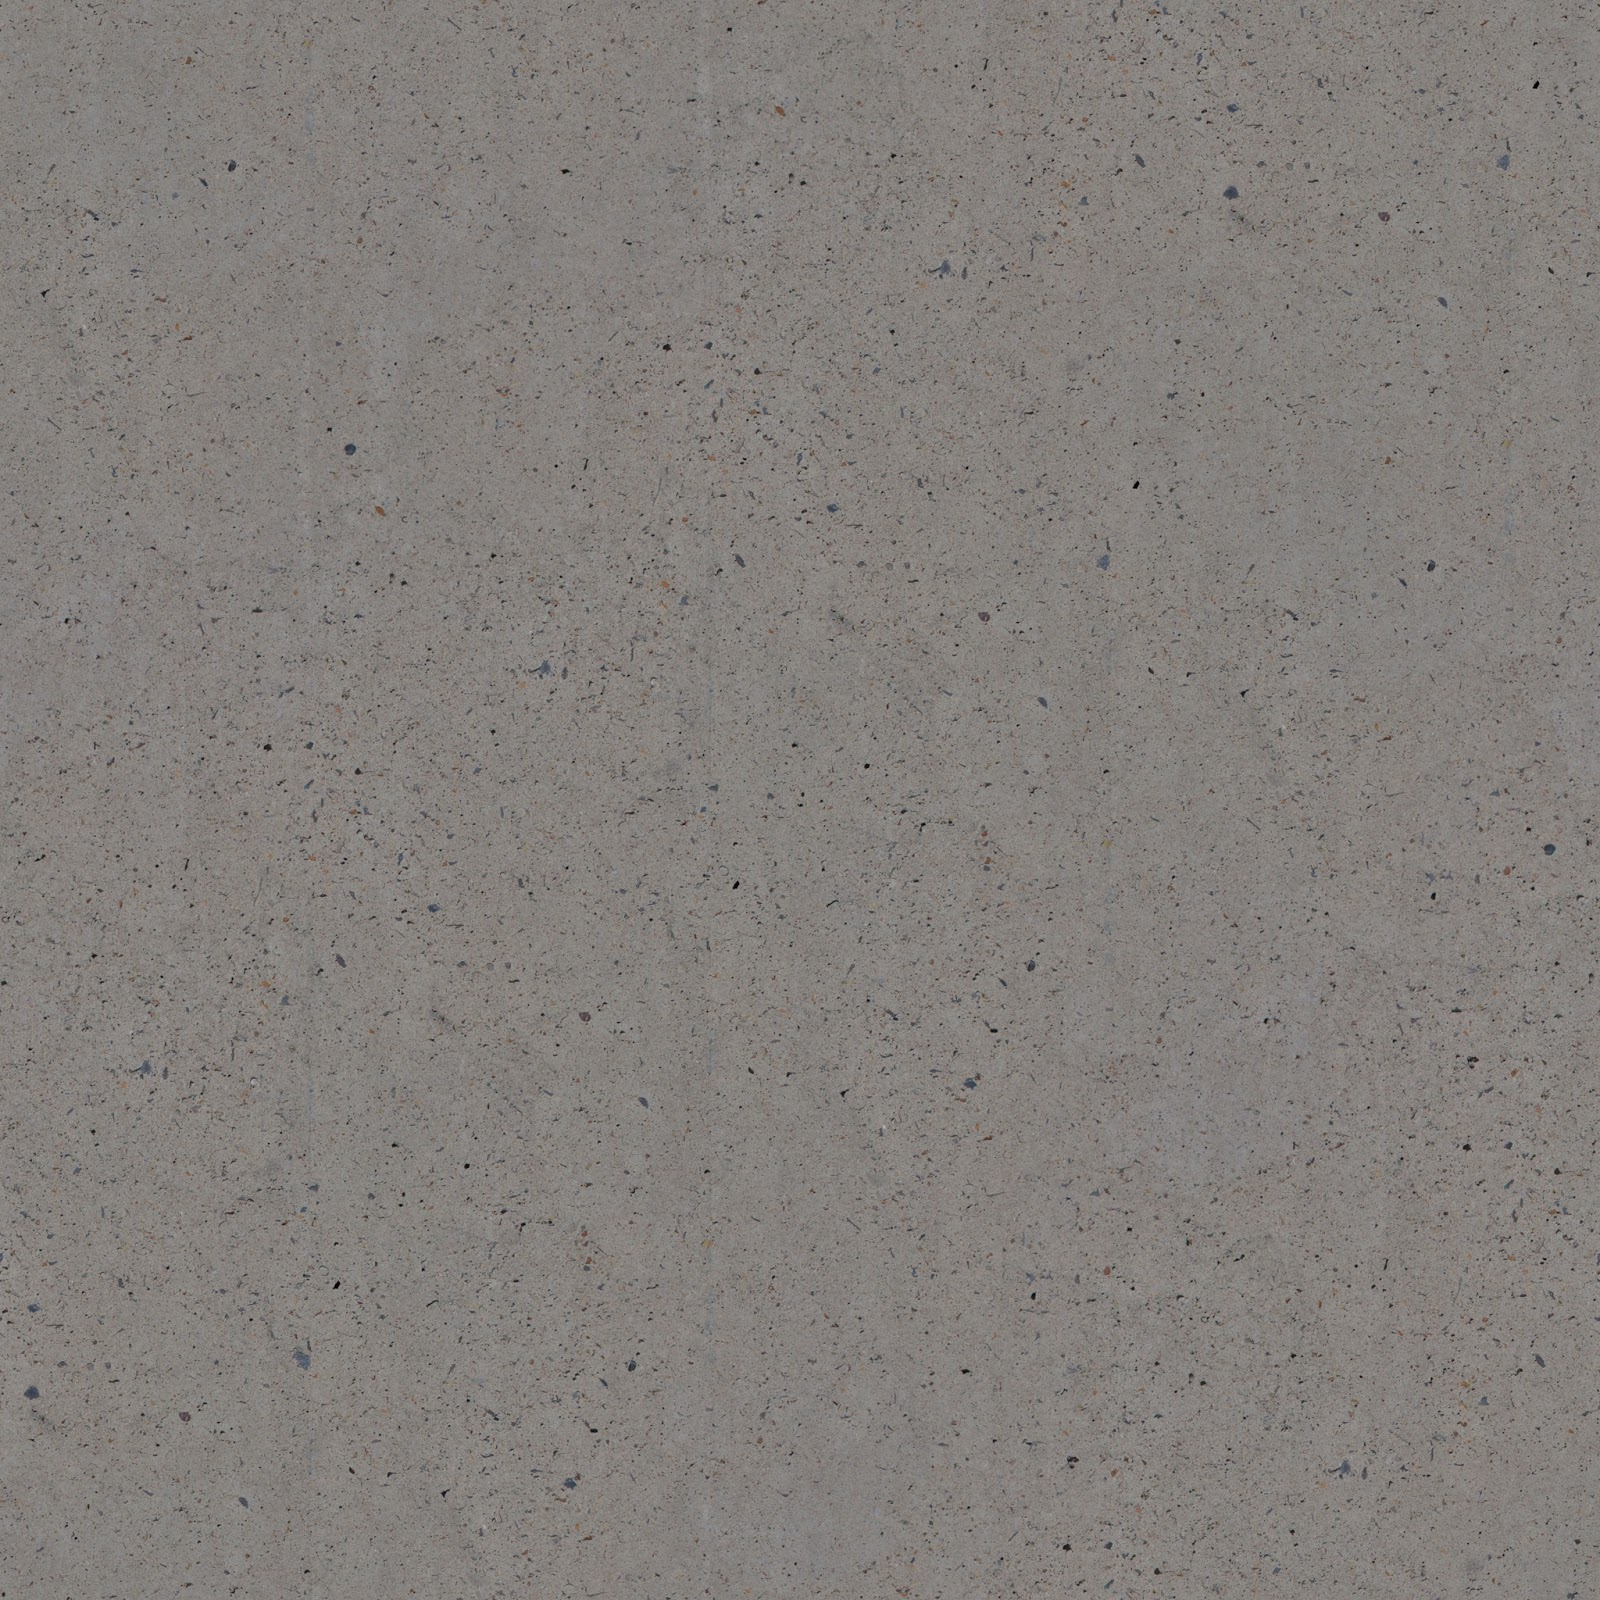 Concrete. High Resolution Seamless Textures  Concrete